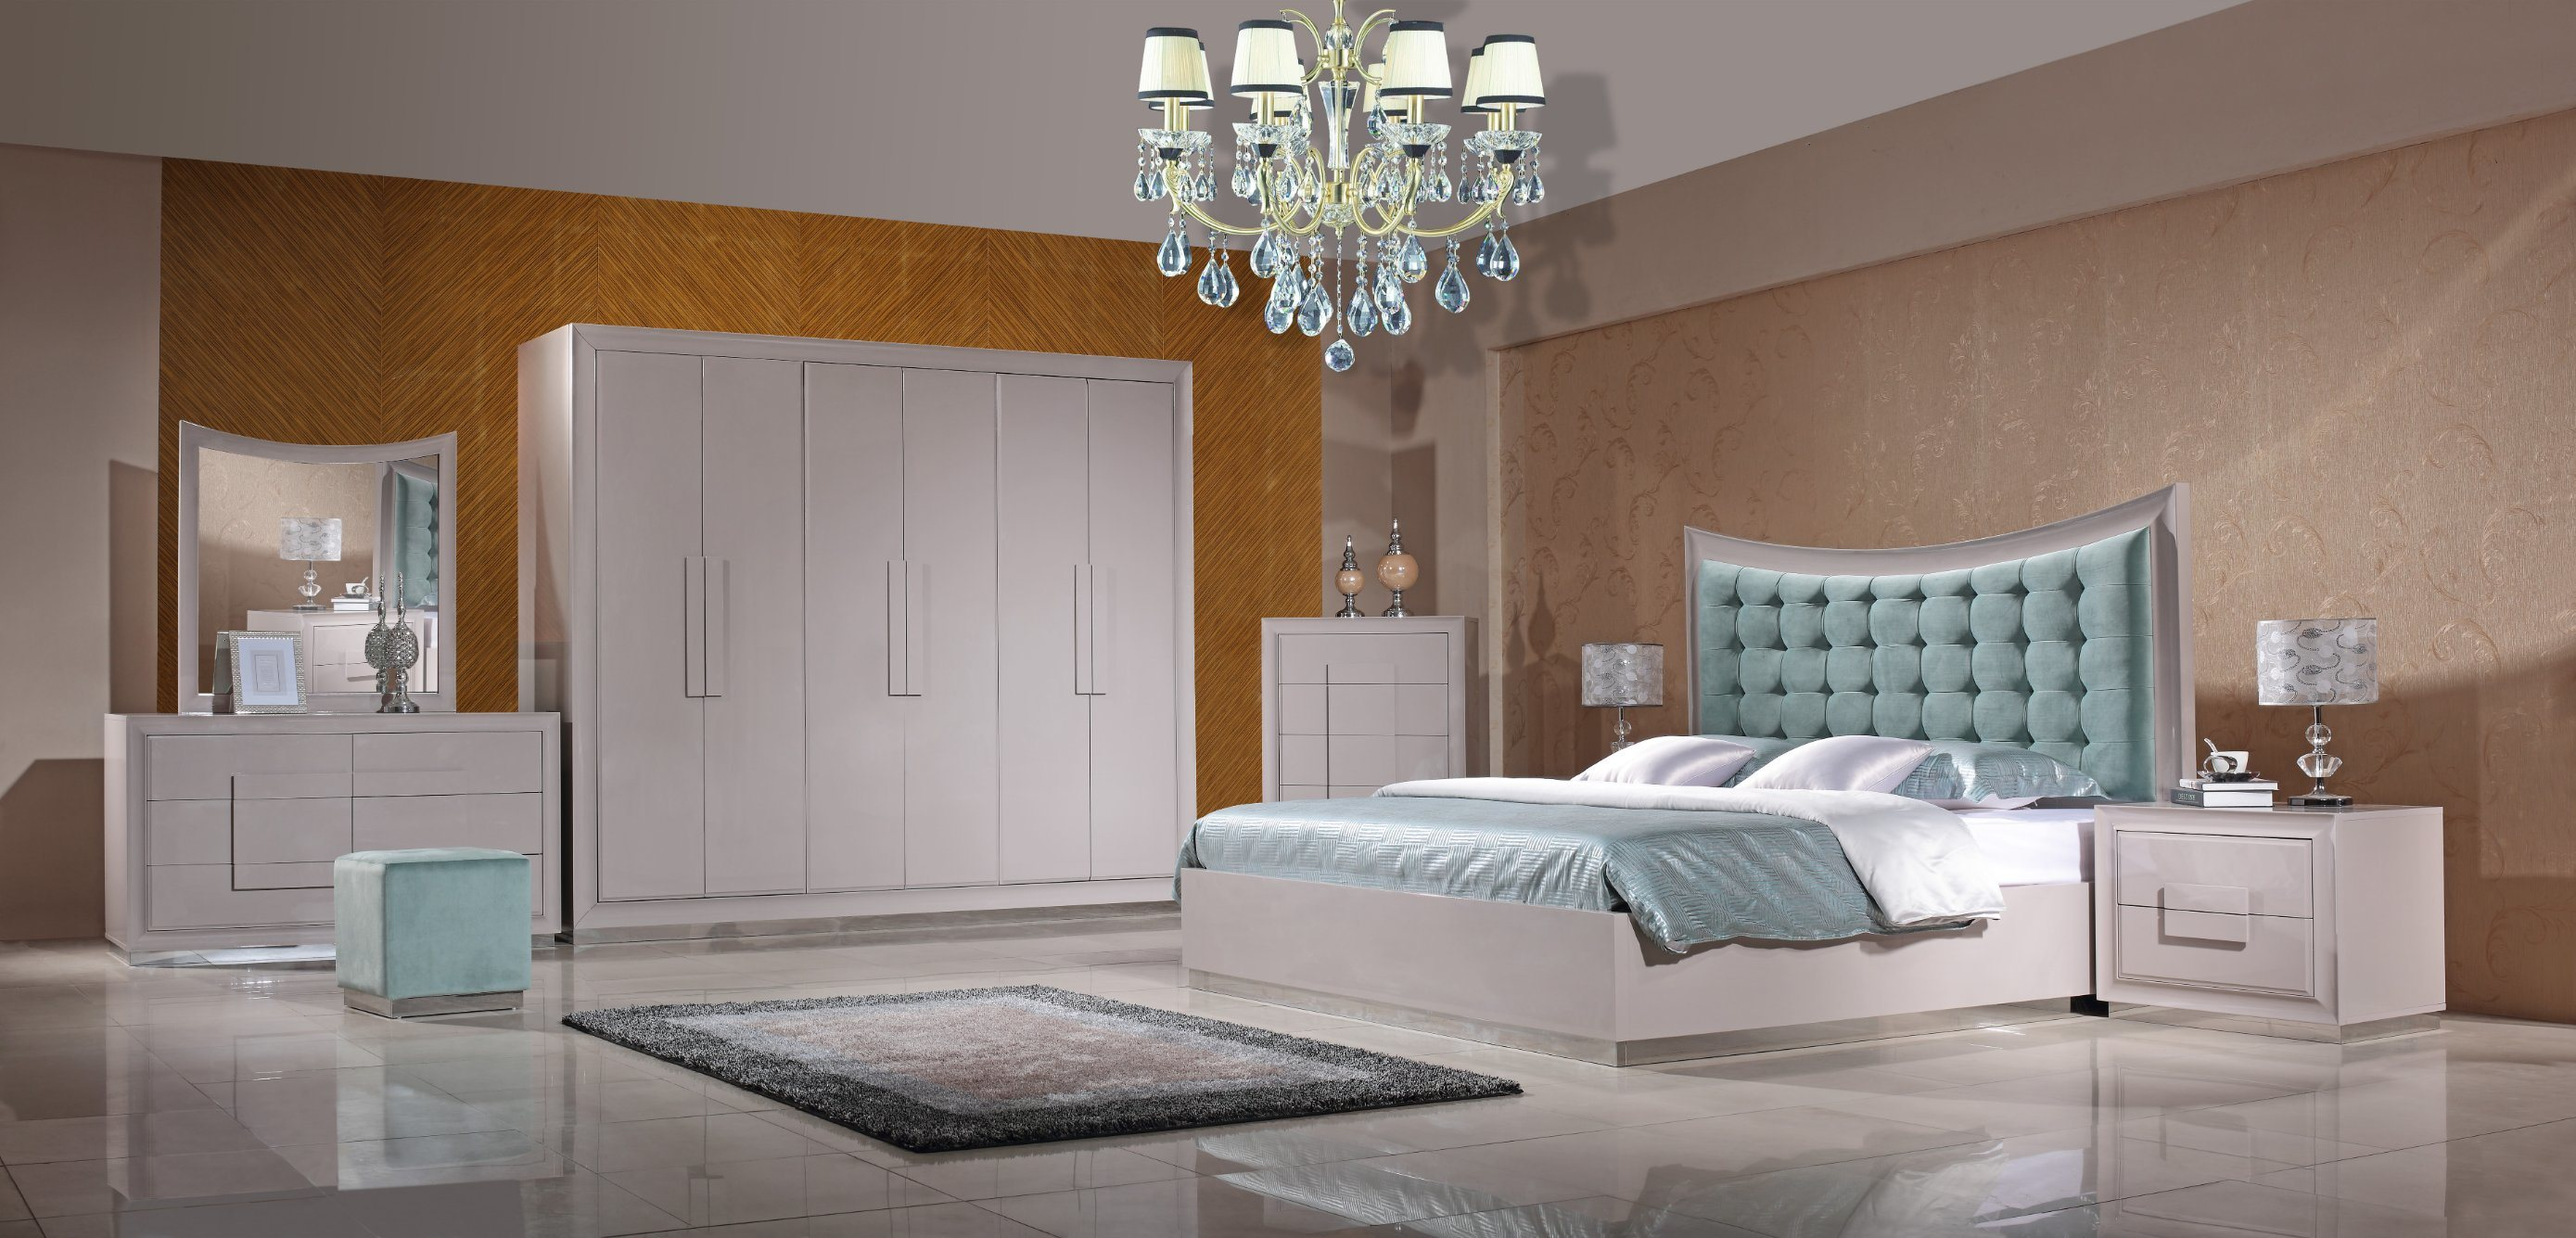 [Hot Item] Bedroom Furniture Made in China for Hot Sale